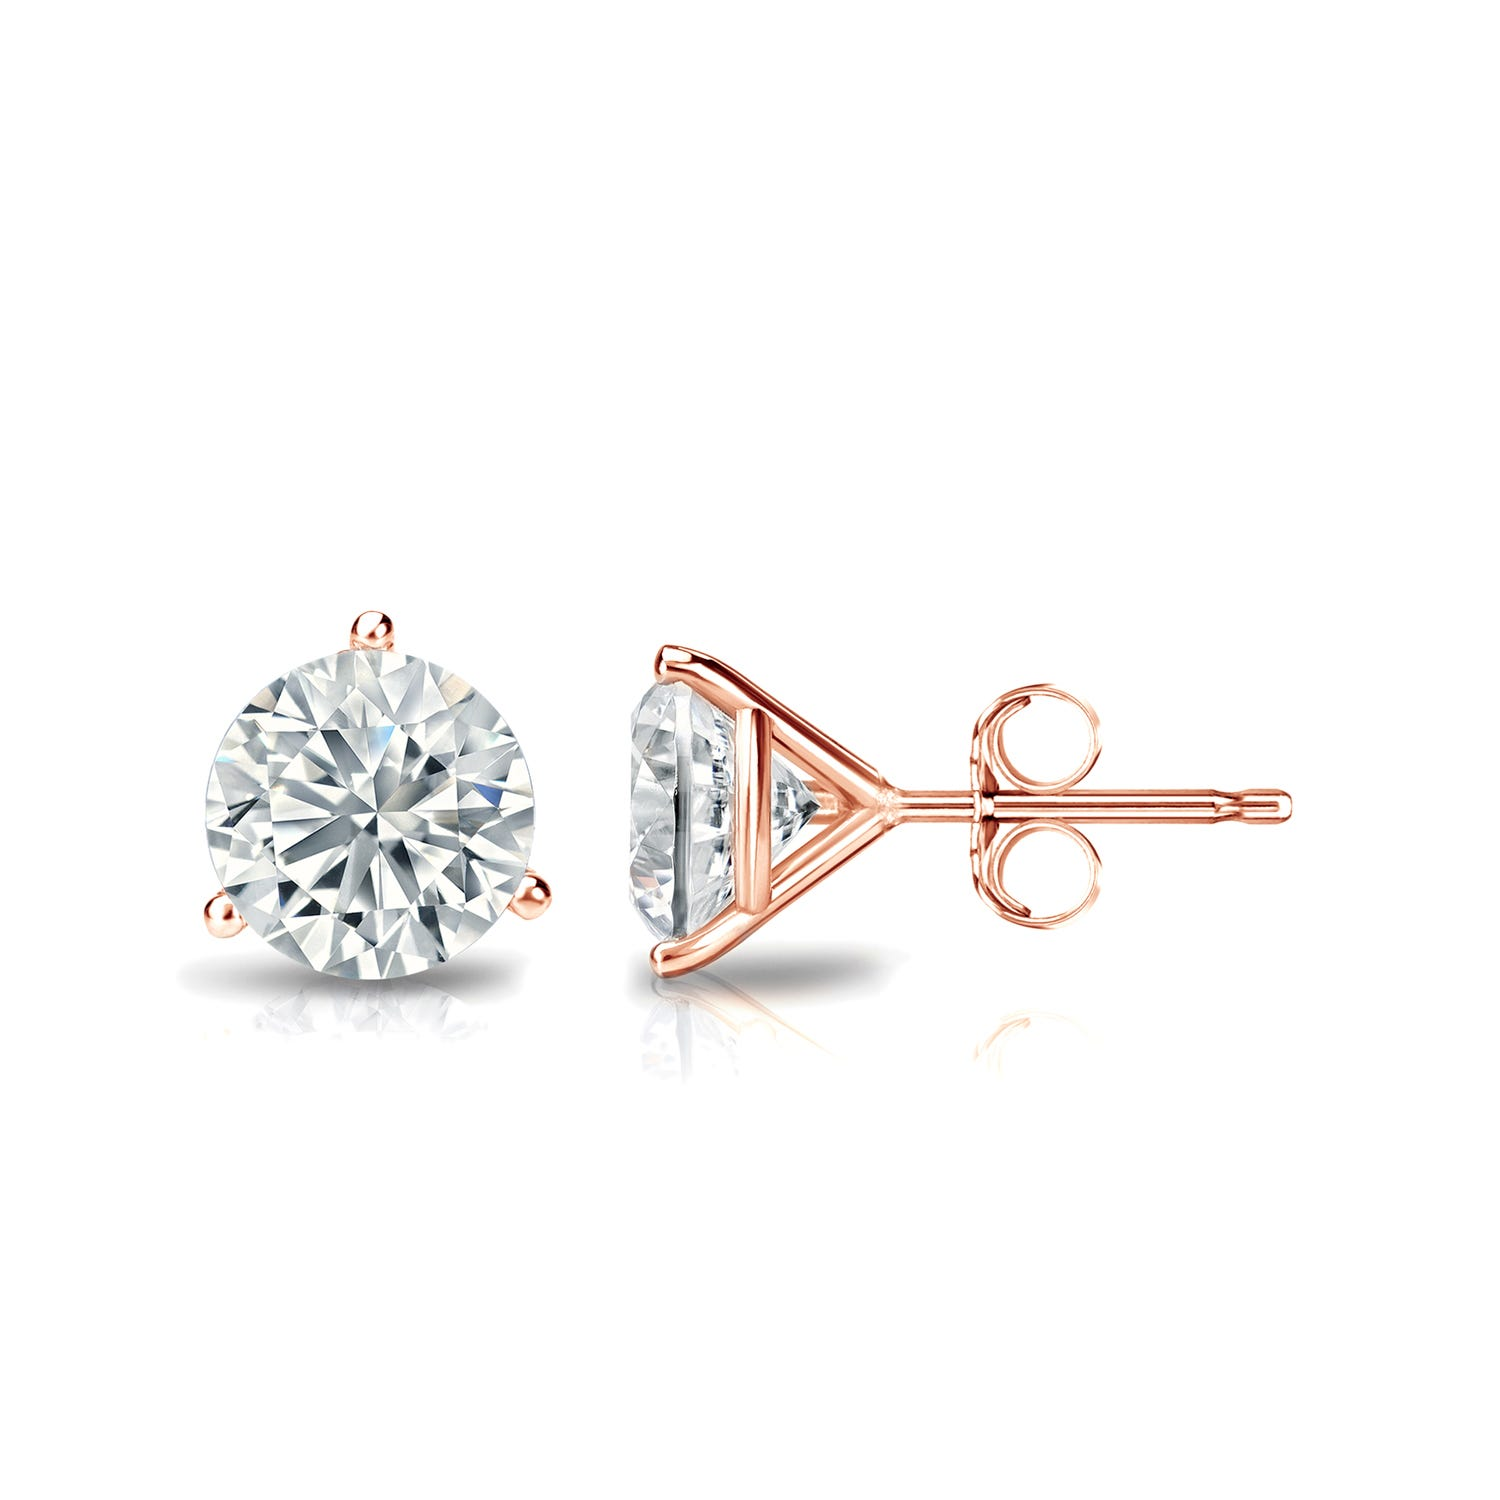 1 CTTW Round Diamond Solitaire Stud Earrings IJ I2 in 14K Rose Gold IGI Certified 3-Prong Setting